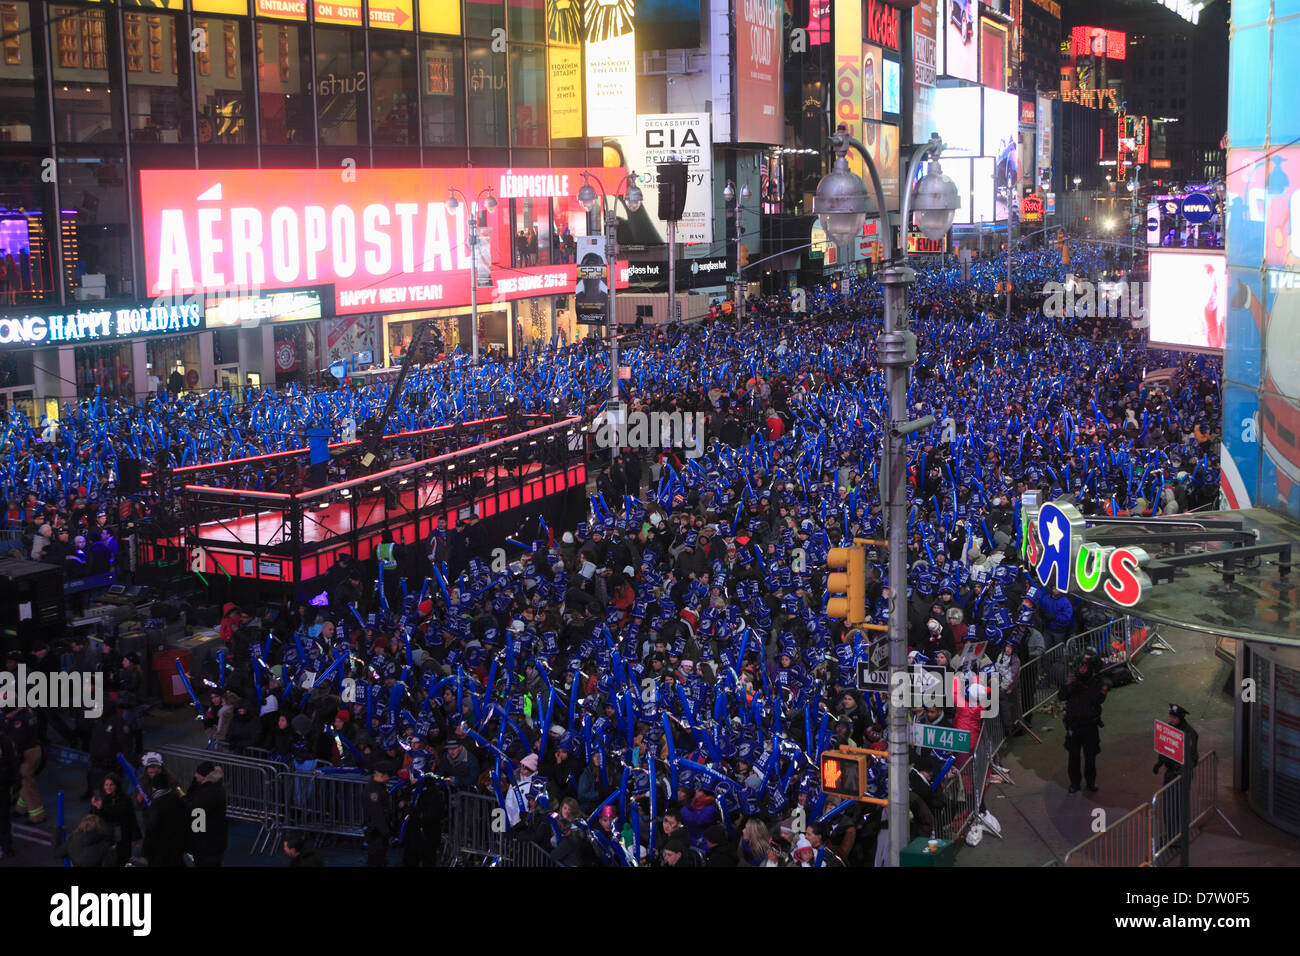 Revelers, Crowds, New Years Eve, Times Square, Manhattan, New York City, USA - Stock Image